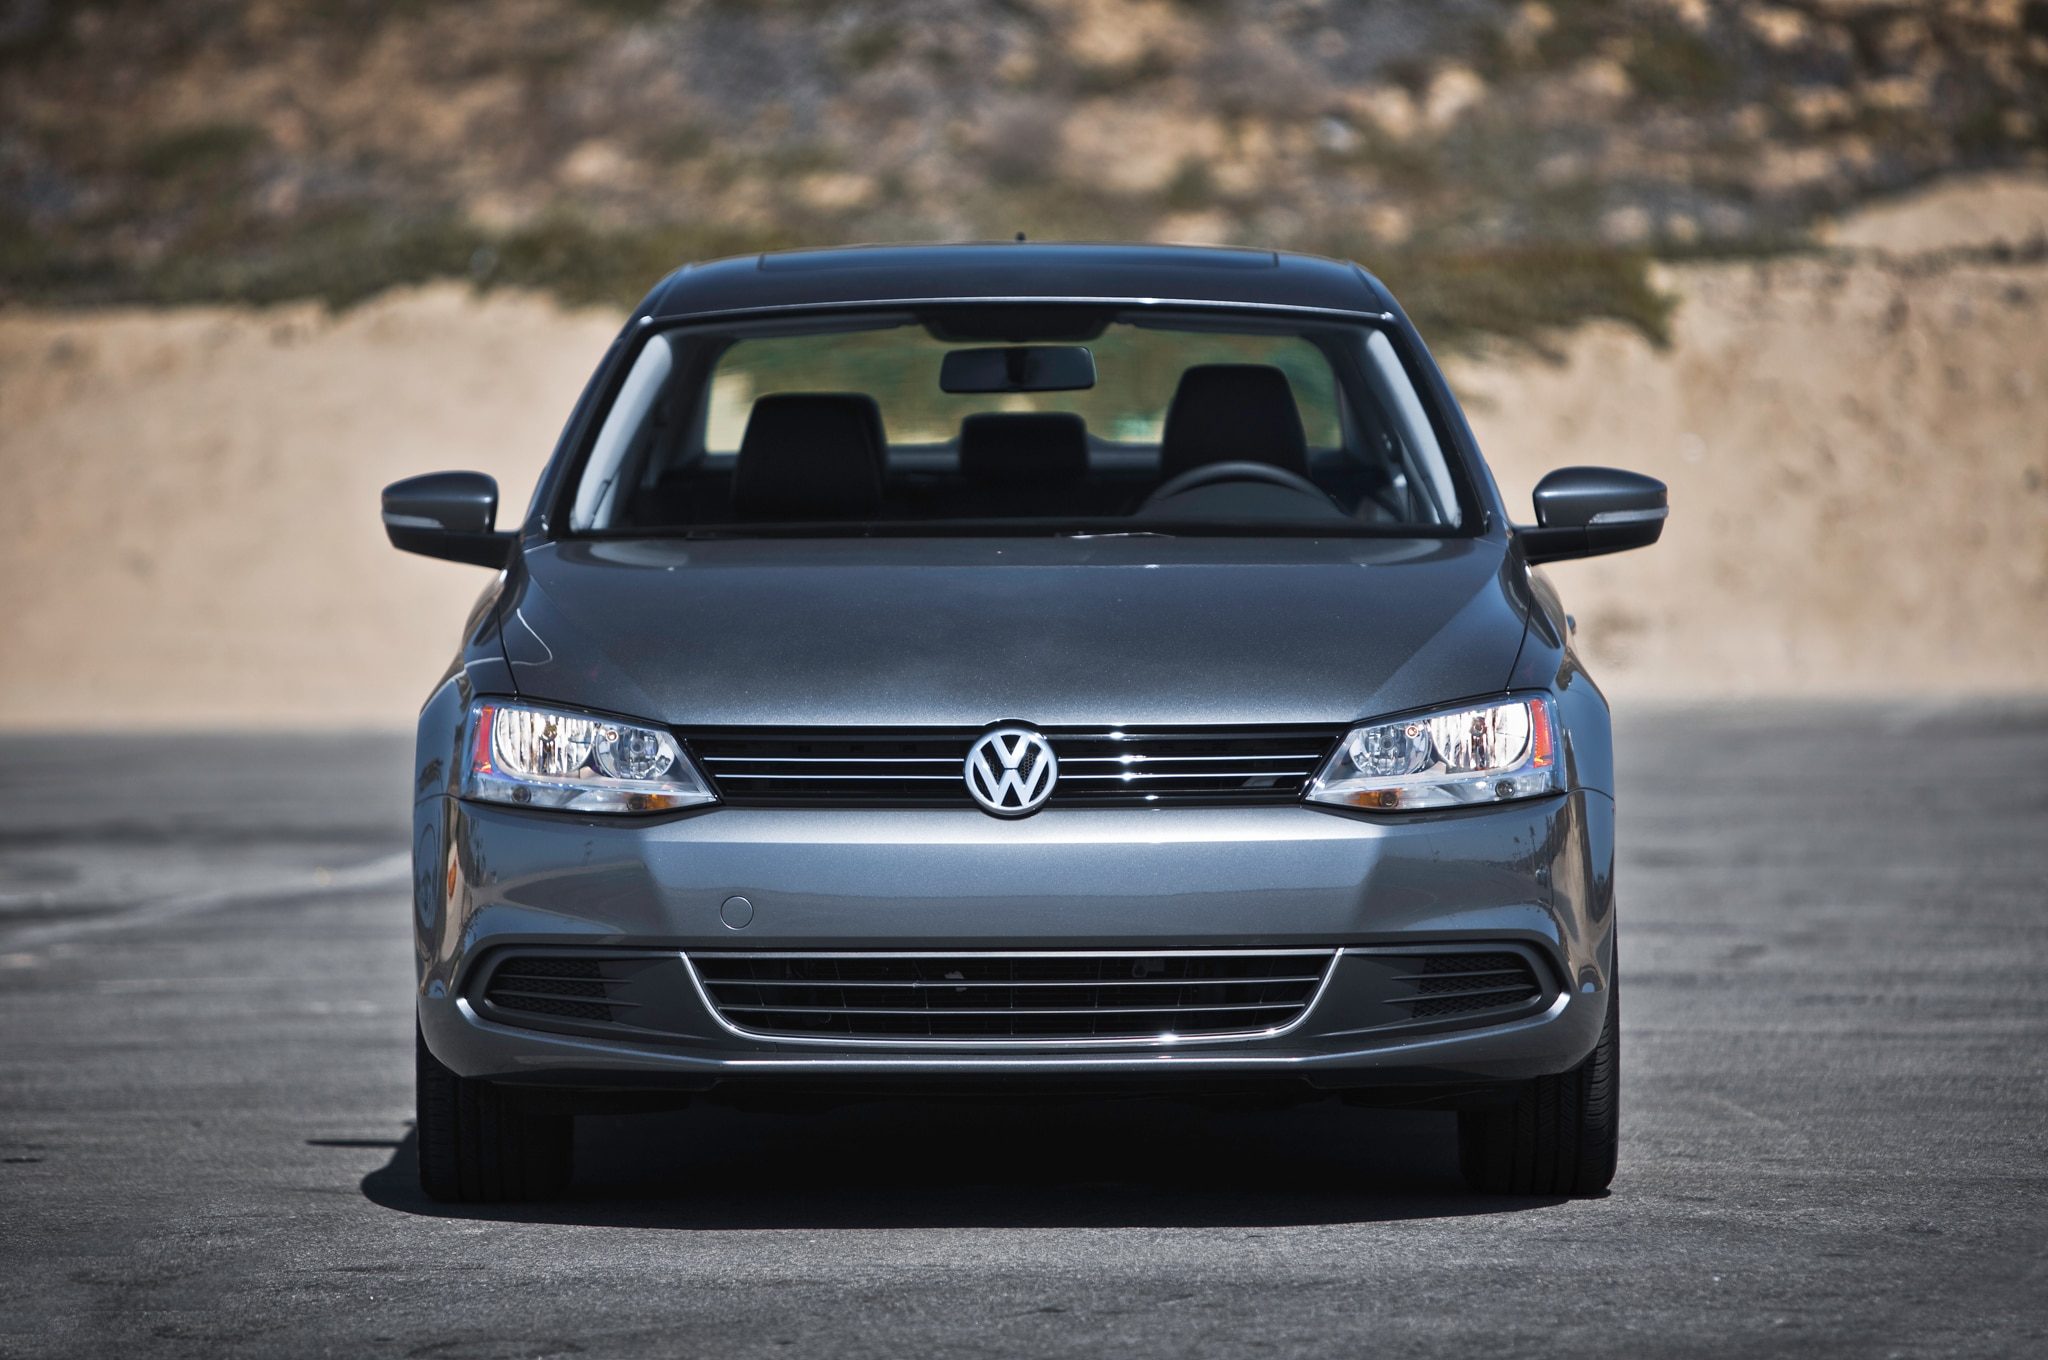 volkswagen jetta 1 8t 2014 primera prueba autos terra motor trend. Black Bedroom Furniture Sets. Home Design Ideas